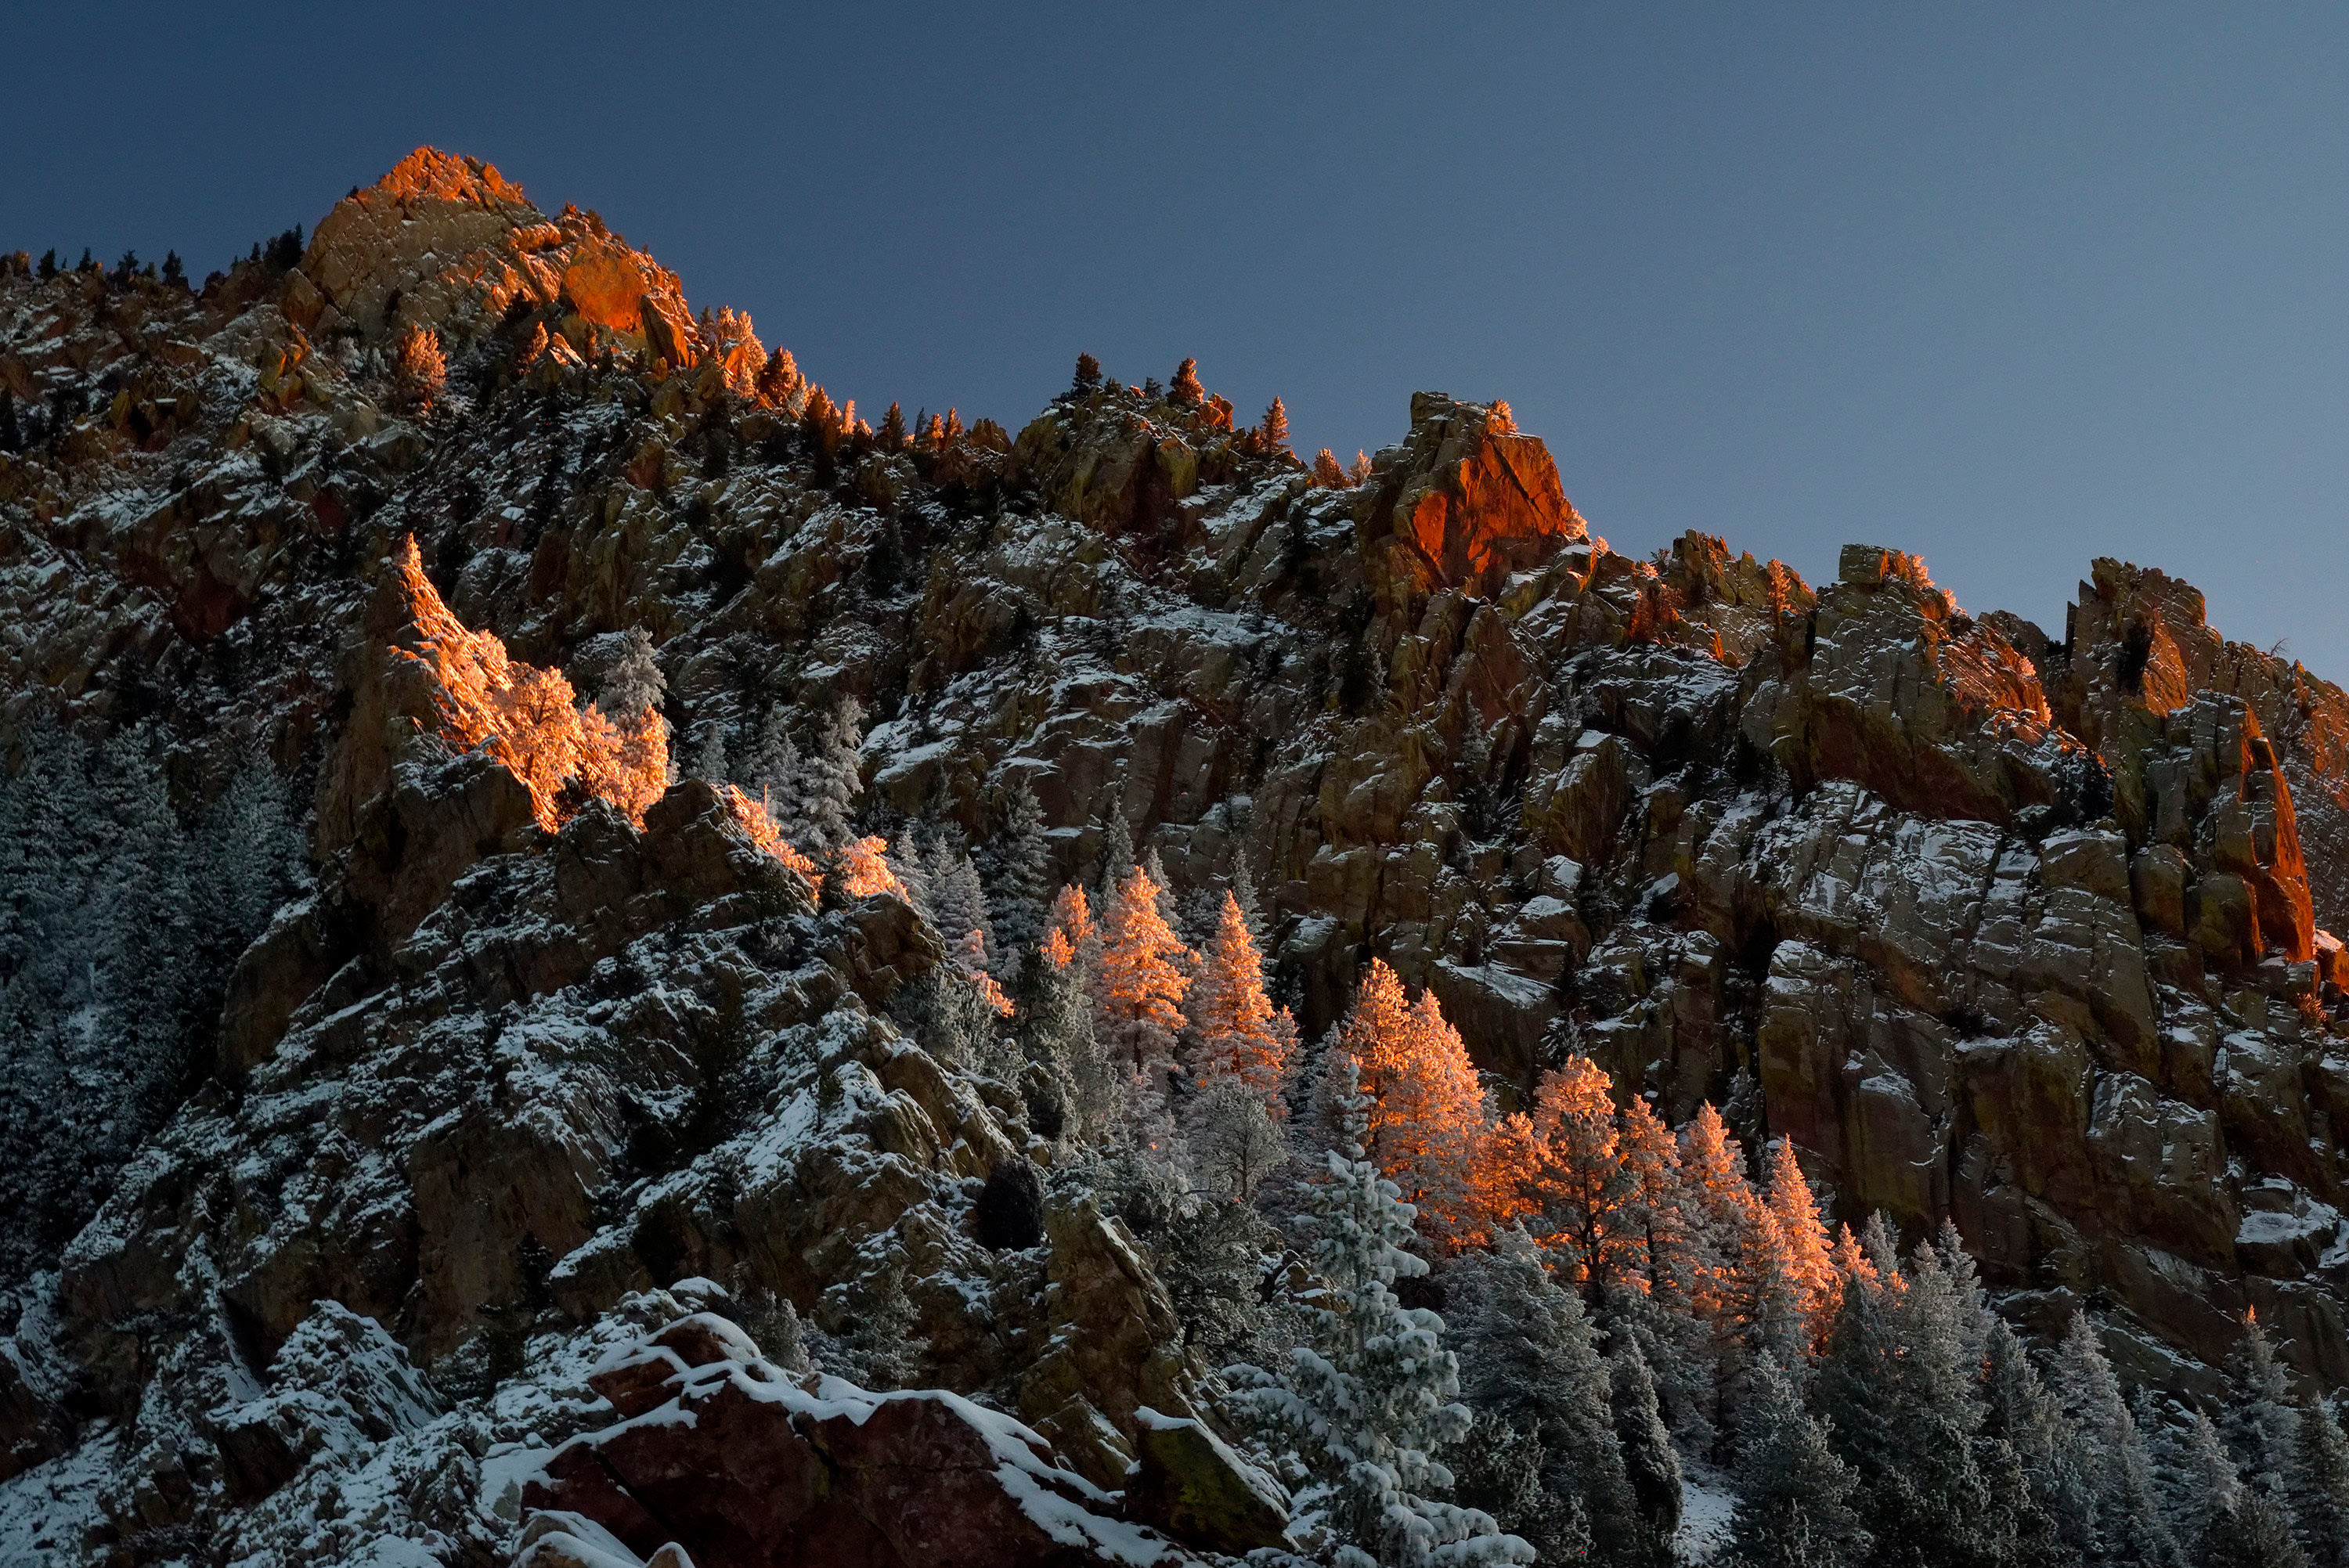 <div class='title'>           Eldorado Dawn         </div>                 <div class='description'>           The first light of the morning casts a warm glow high on the walls of Eldorado Canyon, the morning after a frest winter snow. The contrast of warm sunlight and cool winter shadows is captivating, coming together on the snow covered trees clinging to the canyon walls.         </div>